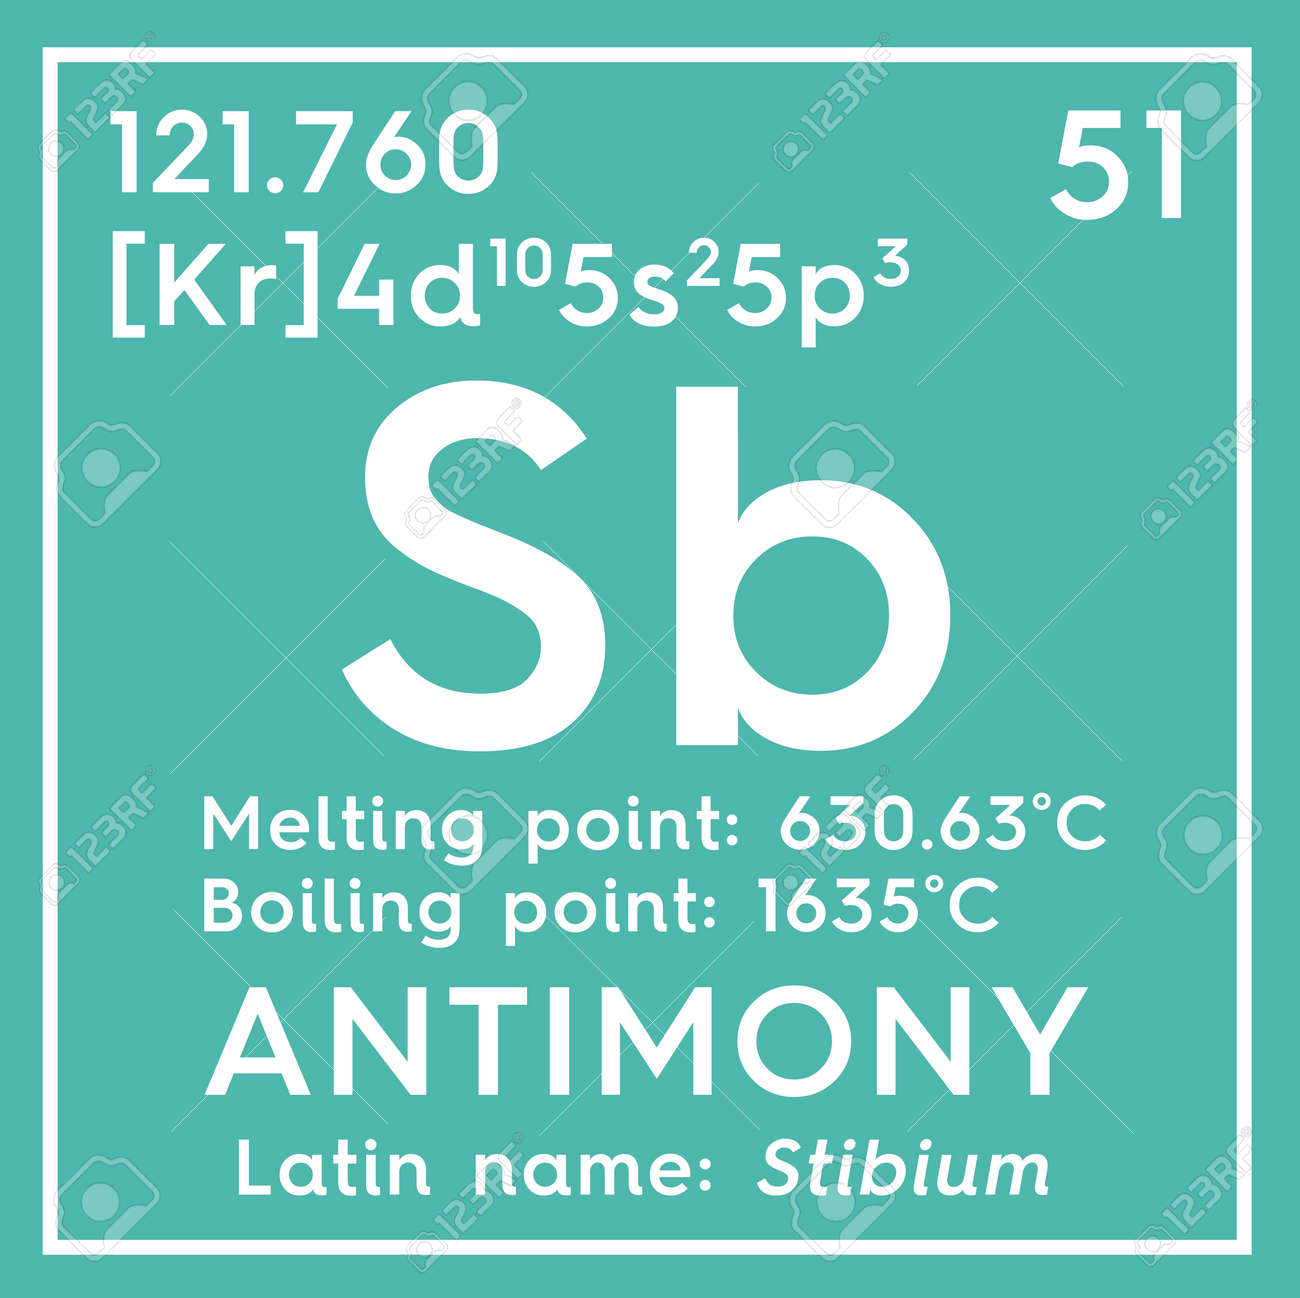 Antimony stibium metalloids chemical element of mendeleevs antimony stibium metalloids chemical element of mendeleevs periodic table antimony in a gamestrikefo Image collections